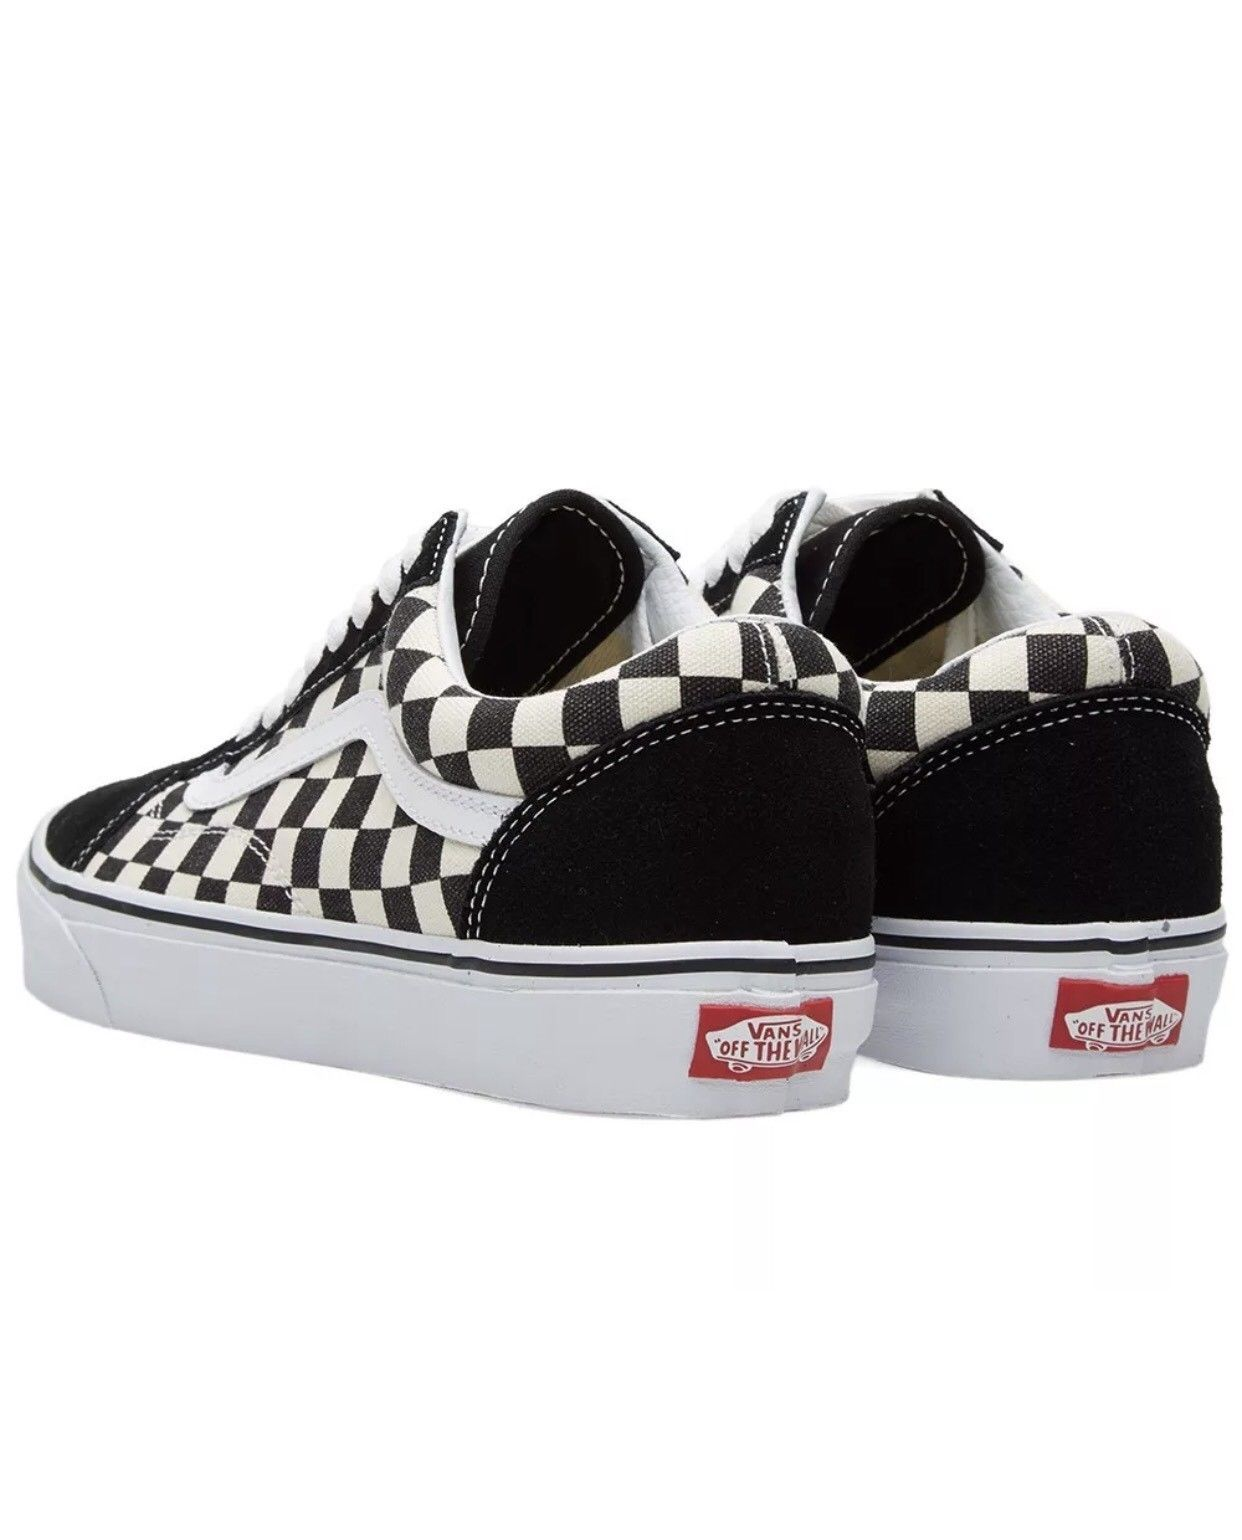 5f9e665f1caf68 ... Vans Old Skool Primary Check Black White Checkerboard Skate Shoes Size  US 9 New ...